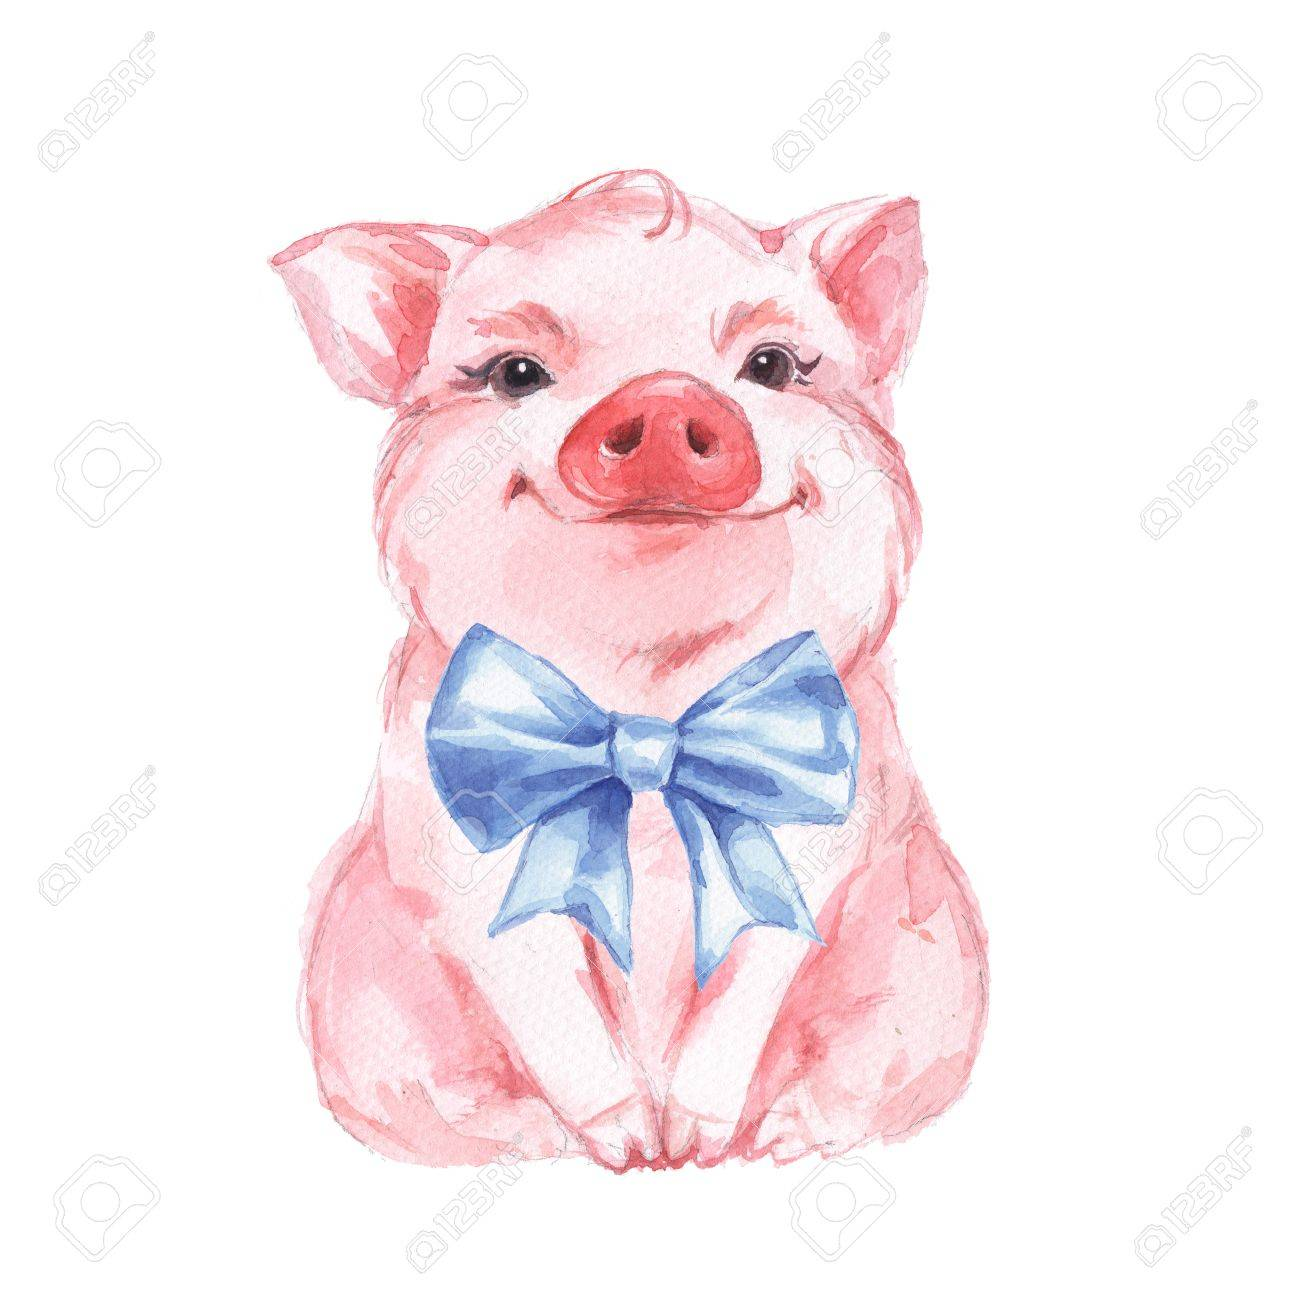 Funny pig and blue bow. Isolated on white - 85605142